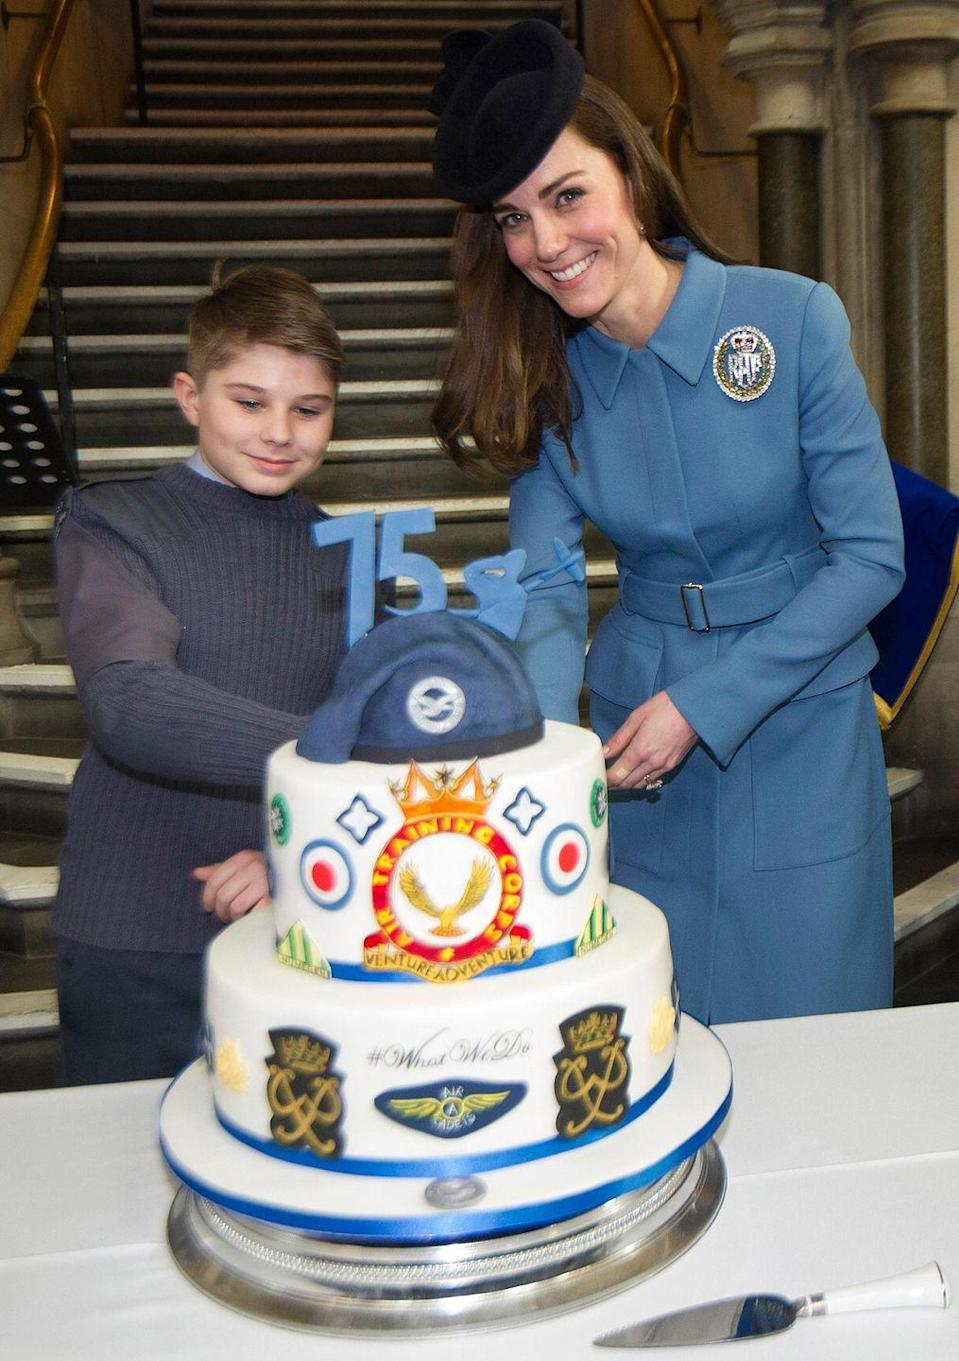 <p>Cake-cutting: Also a big royal duty. Kate did the honours during a celebration for the 75th Anniversary of the RAF Air Cadets London. And she wore a big fancy RAF pin on her coat. </p>